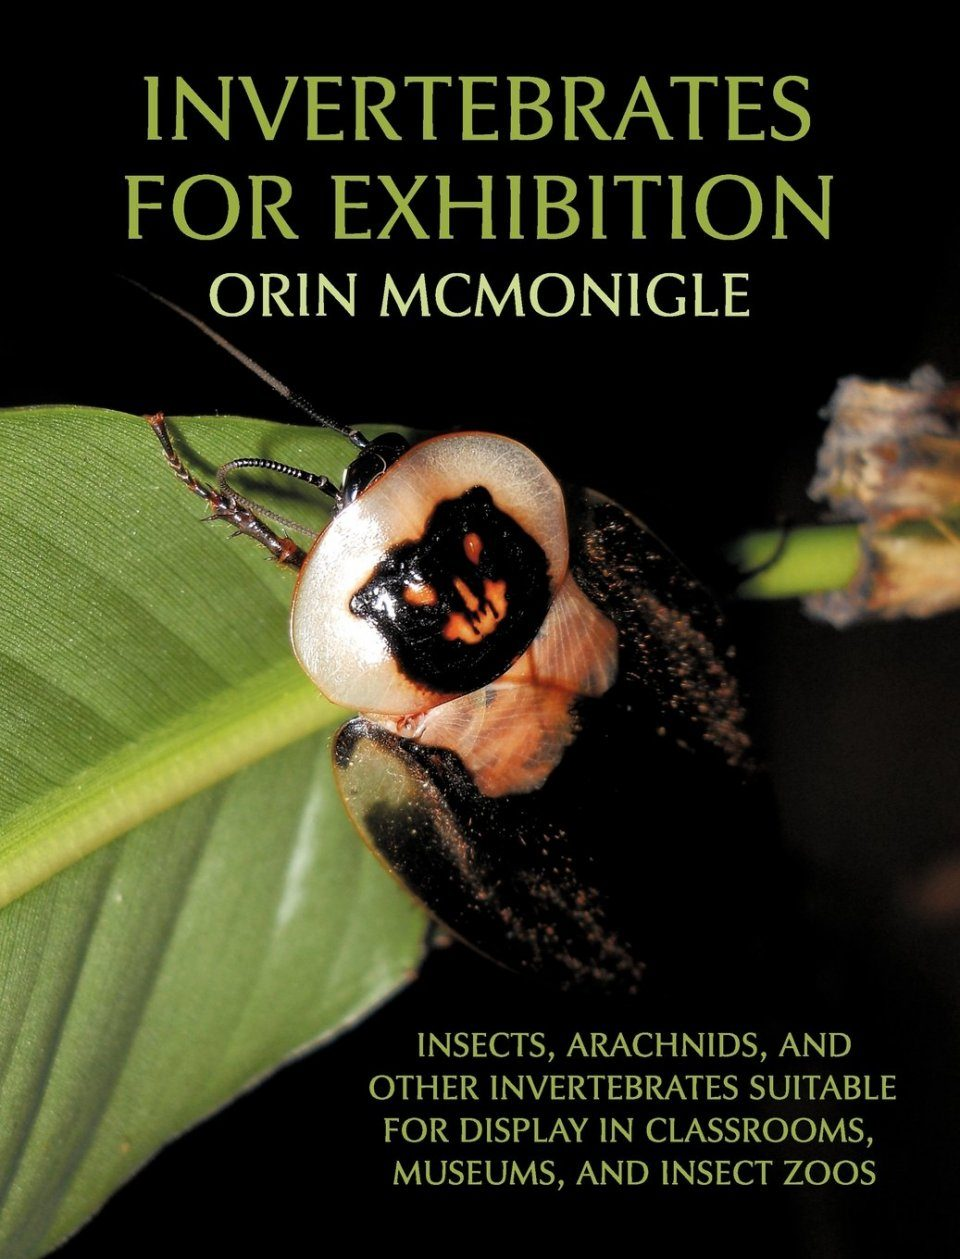 Invertebrates for Exhibition